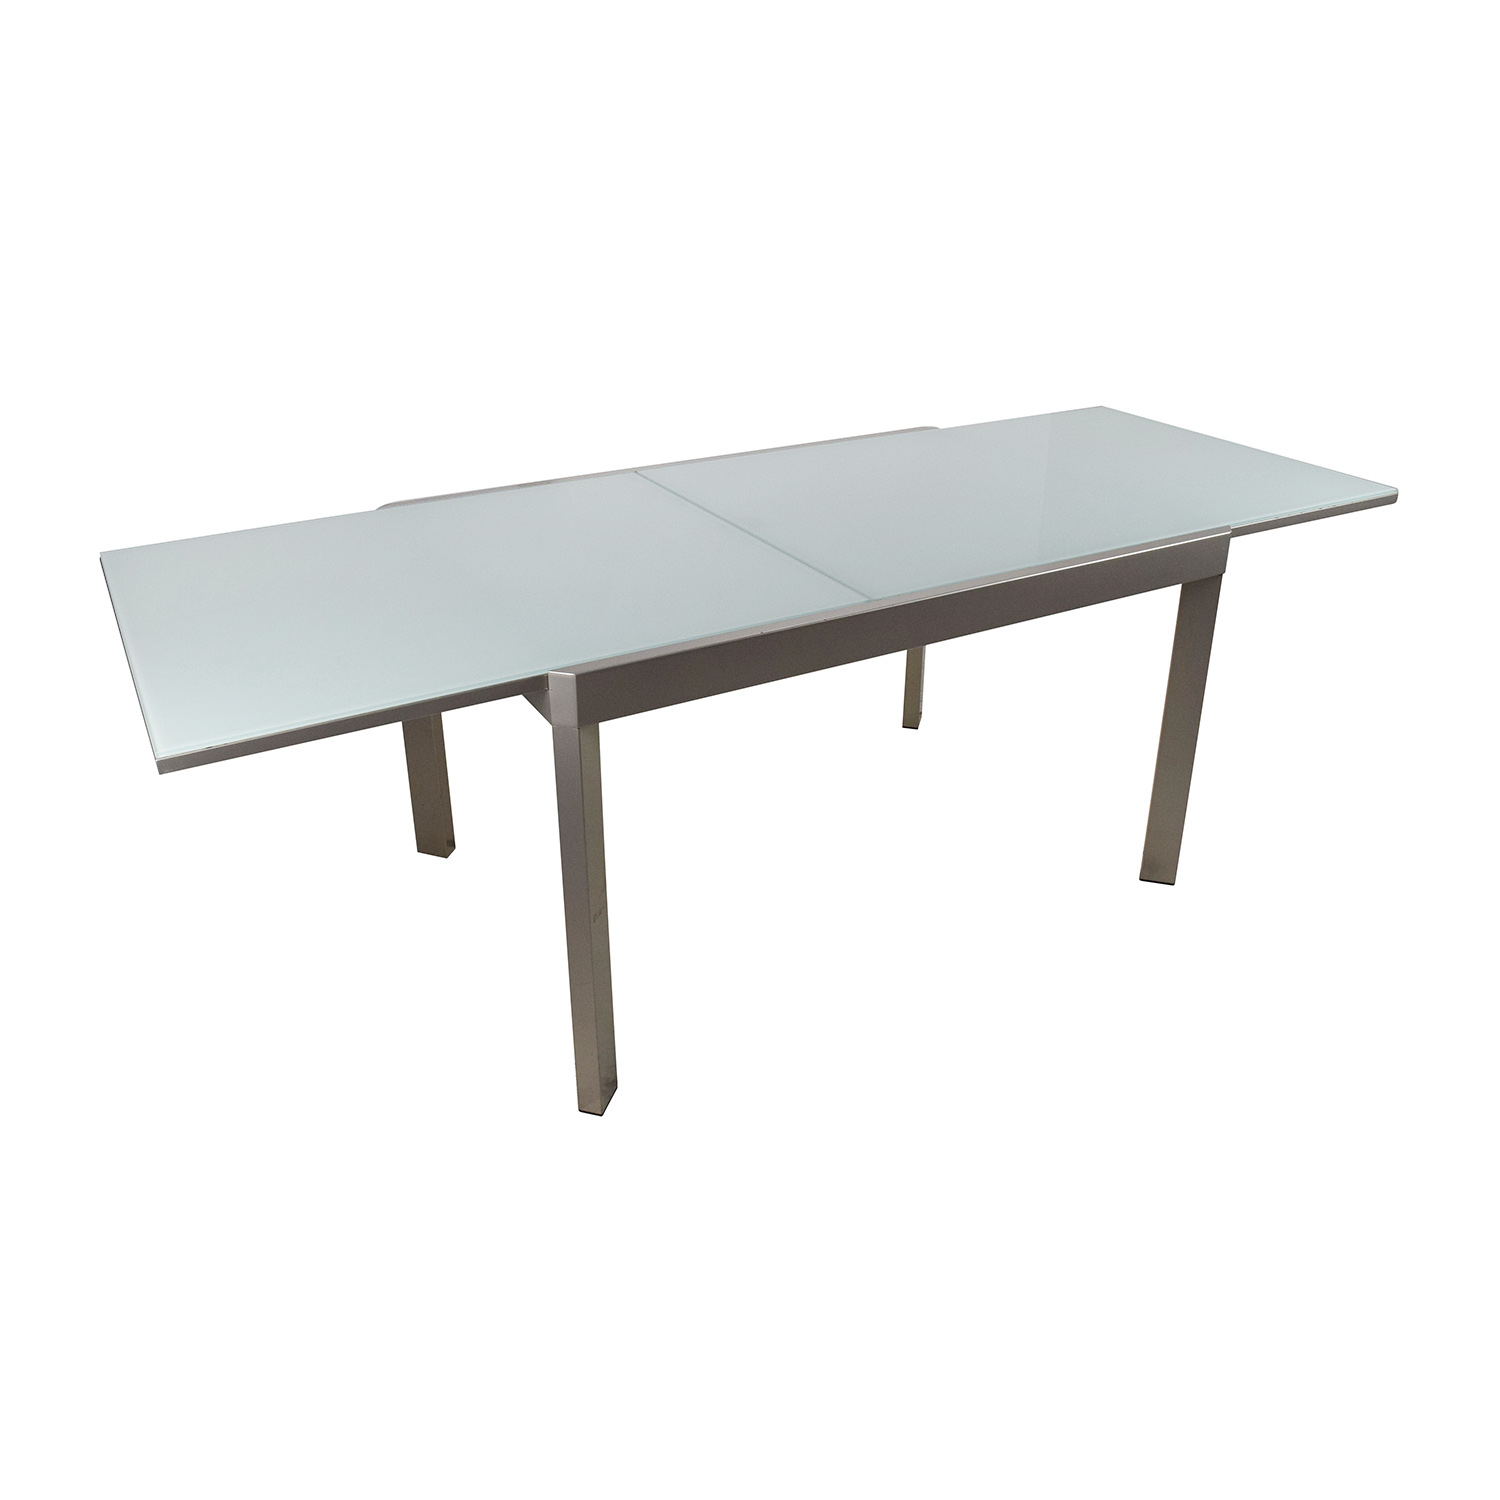 79 off calligaris calligaris extendable glass dining for Extendable glass dining table